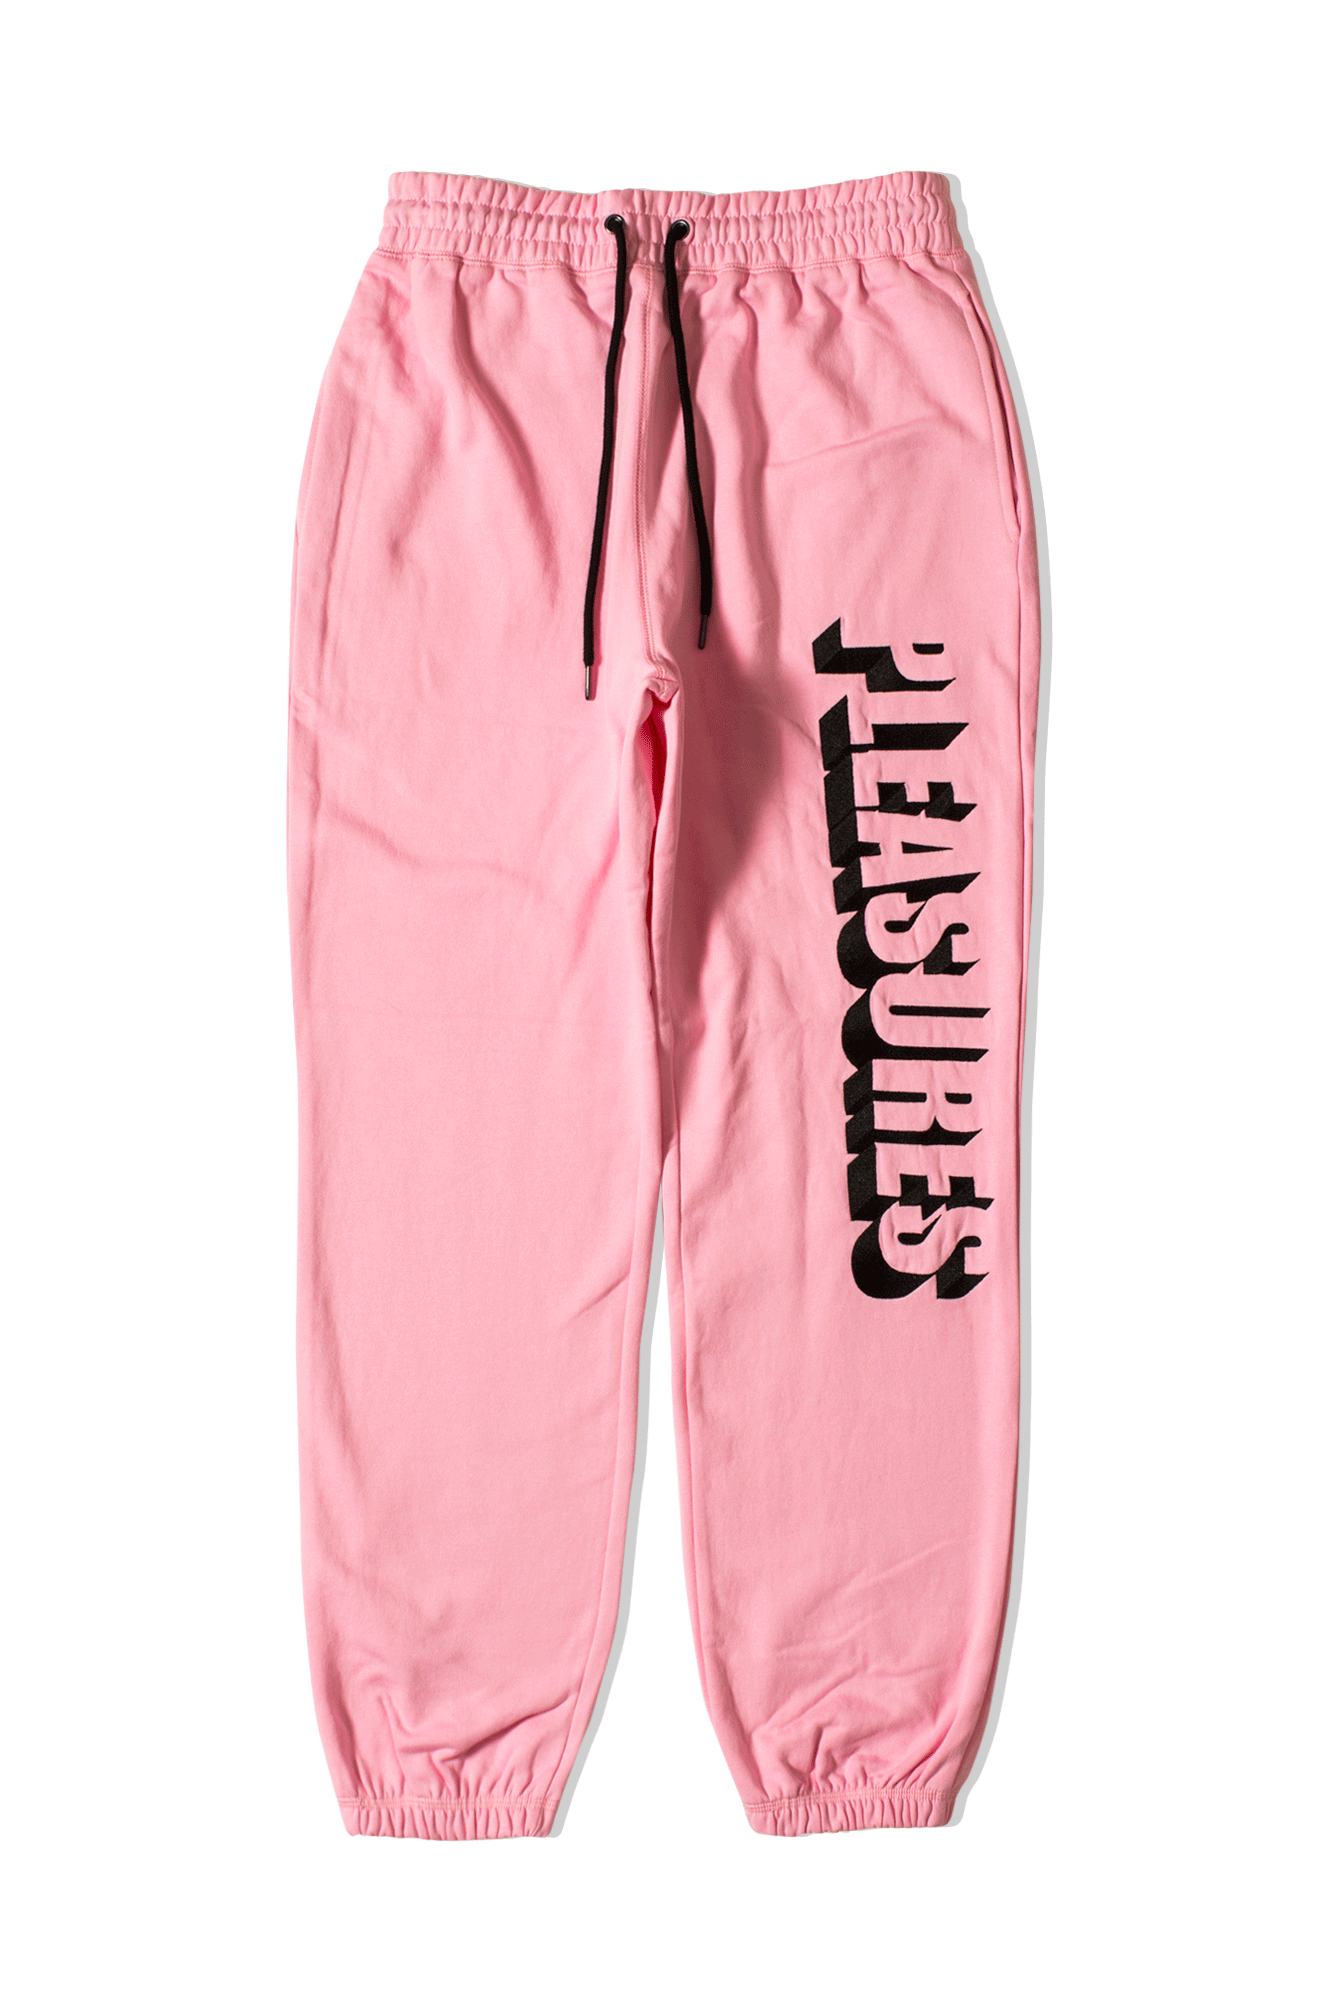 Harvard Embroidered Fleece Pants Pink